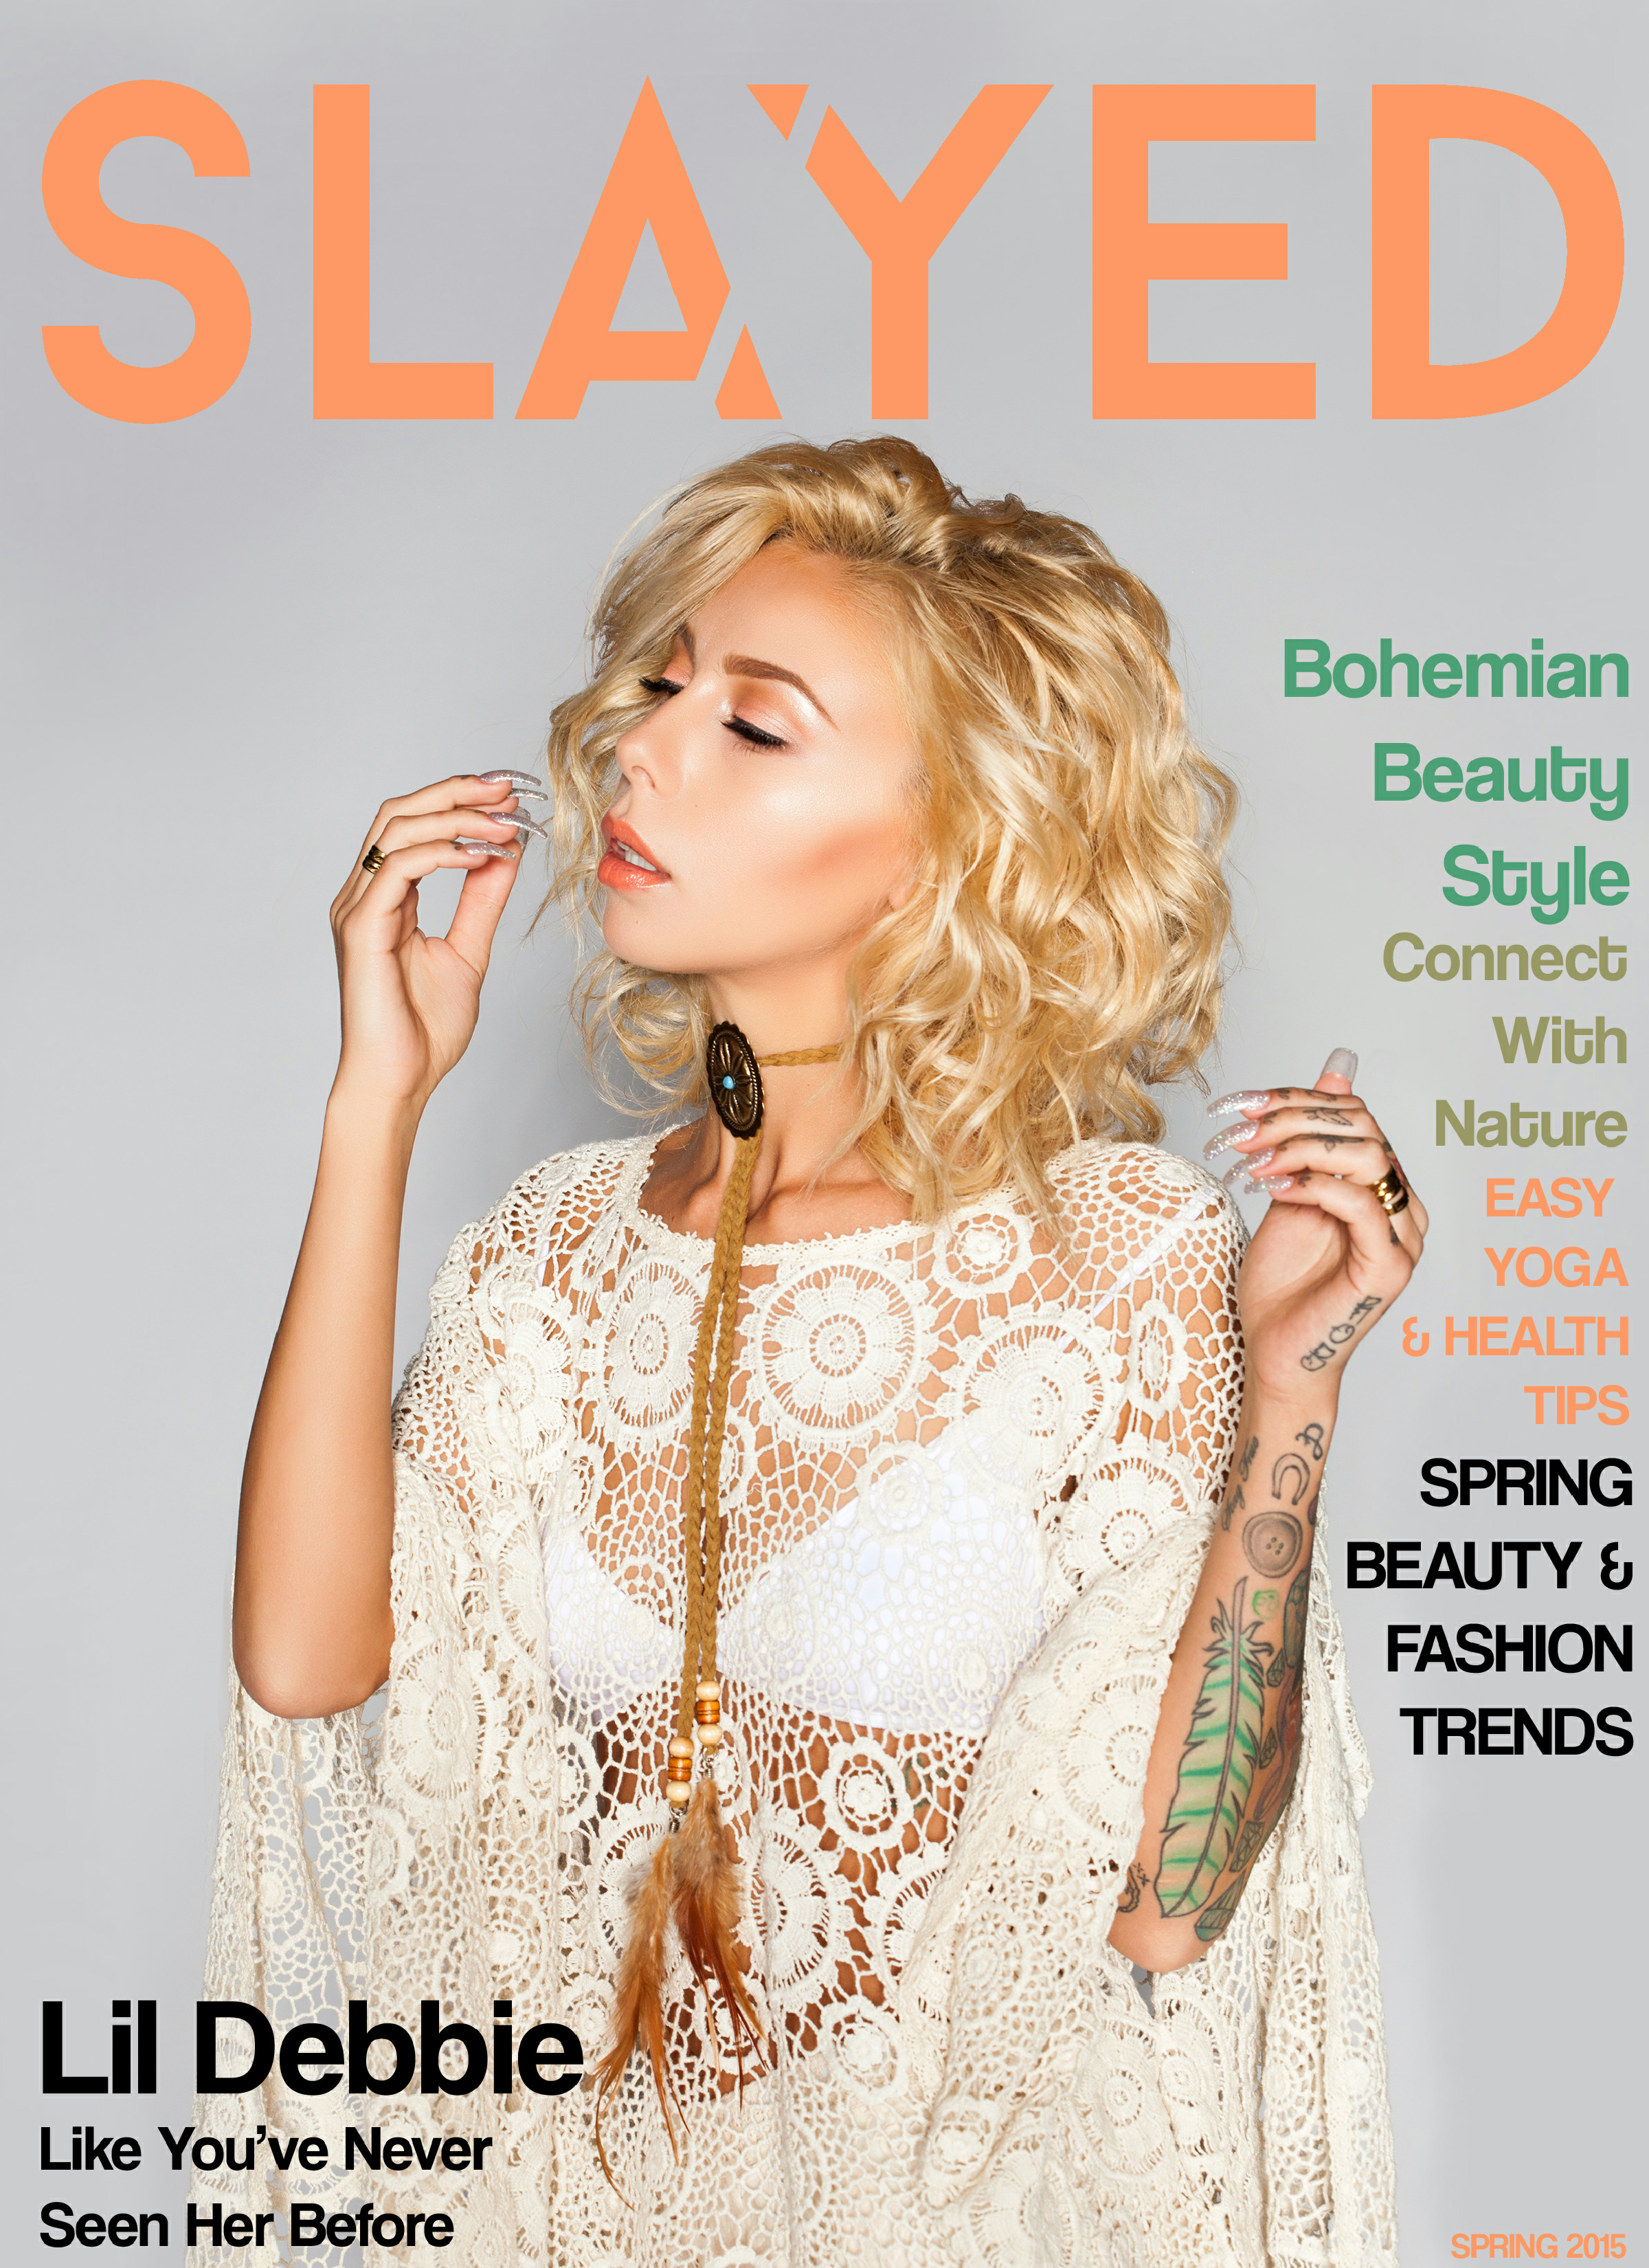 SLAYED MAGAZINE SPRING 2015-1.jpg